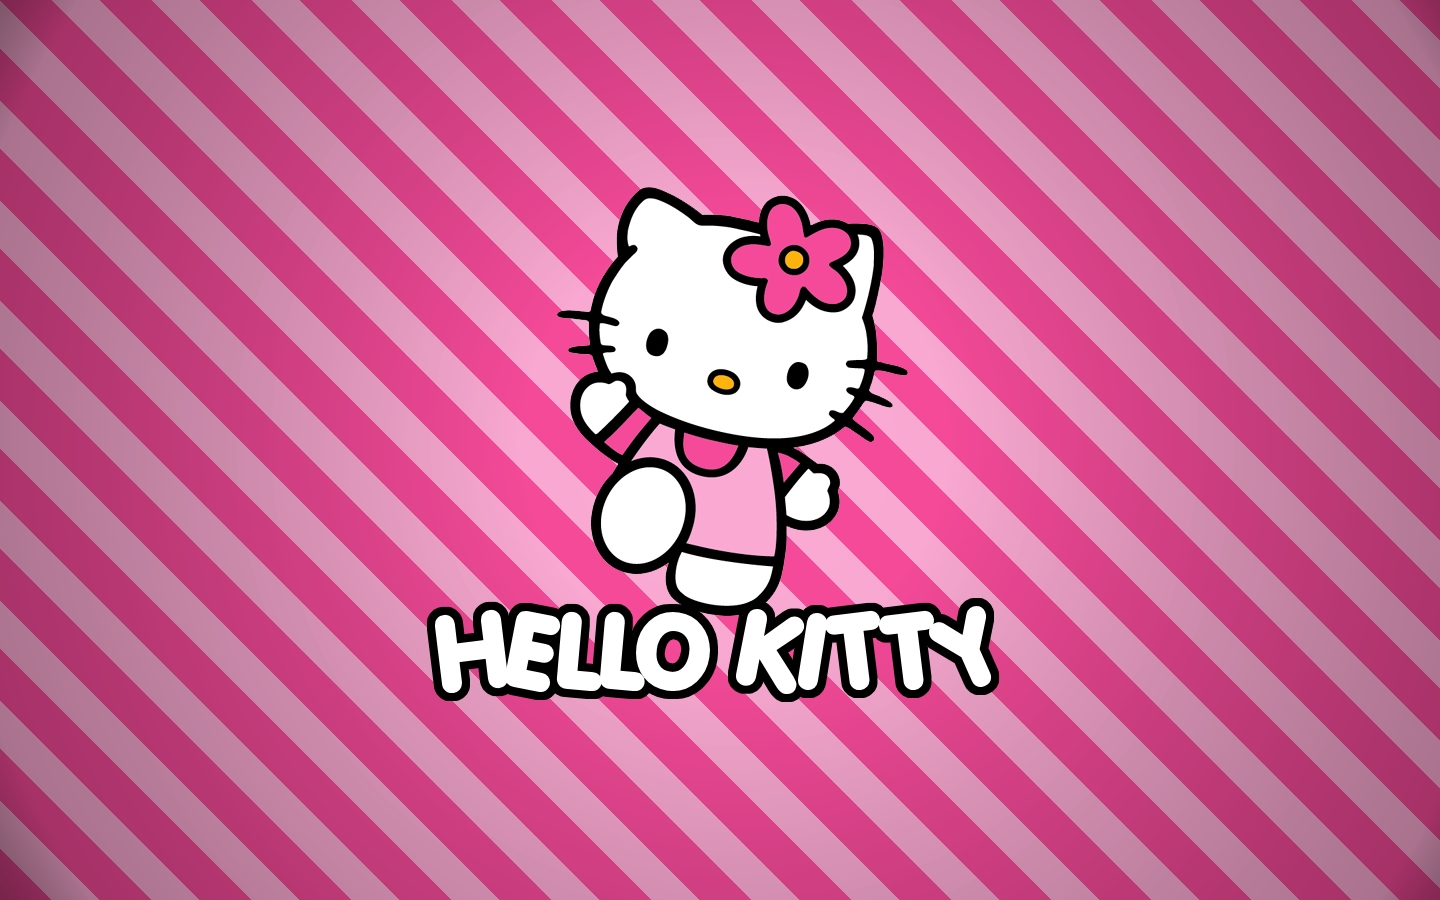 hello kitty hd wallpaper for macbook - cartoons wallpapers